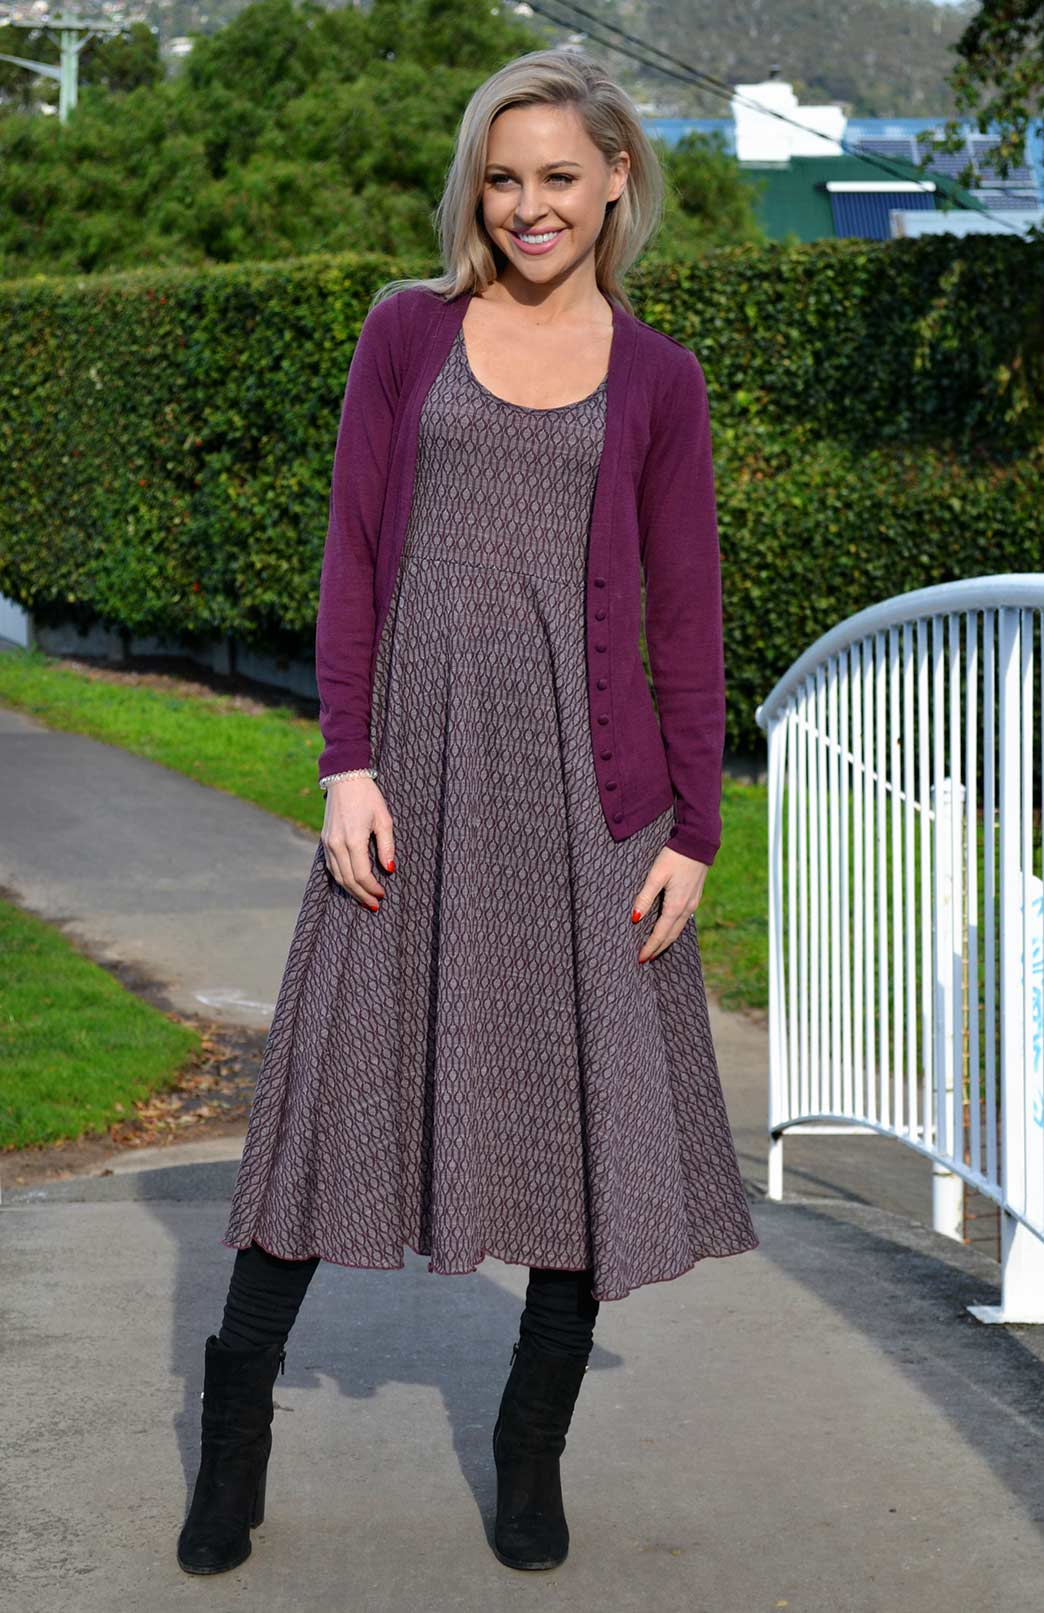 Fan Dress - Women's Raisin Keyhole Patterned Woollen Dress with empire waistline - Smitten Merino Tasmania Australia